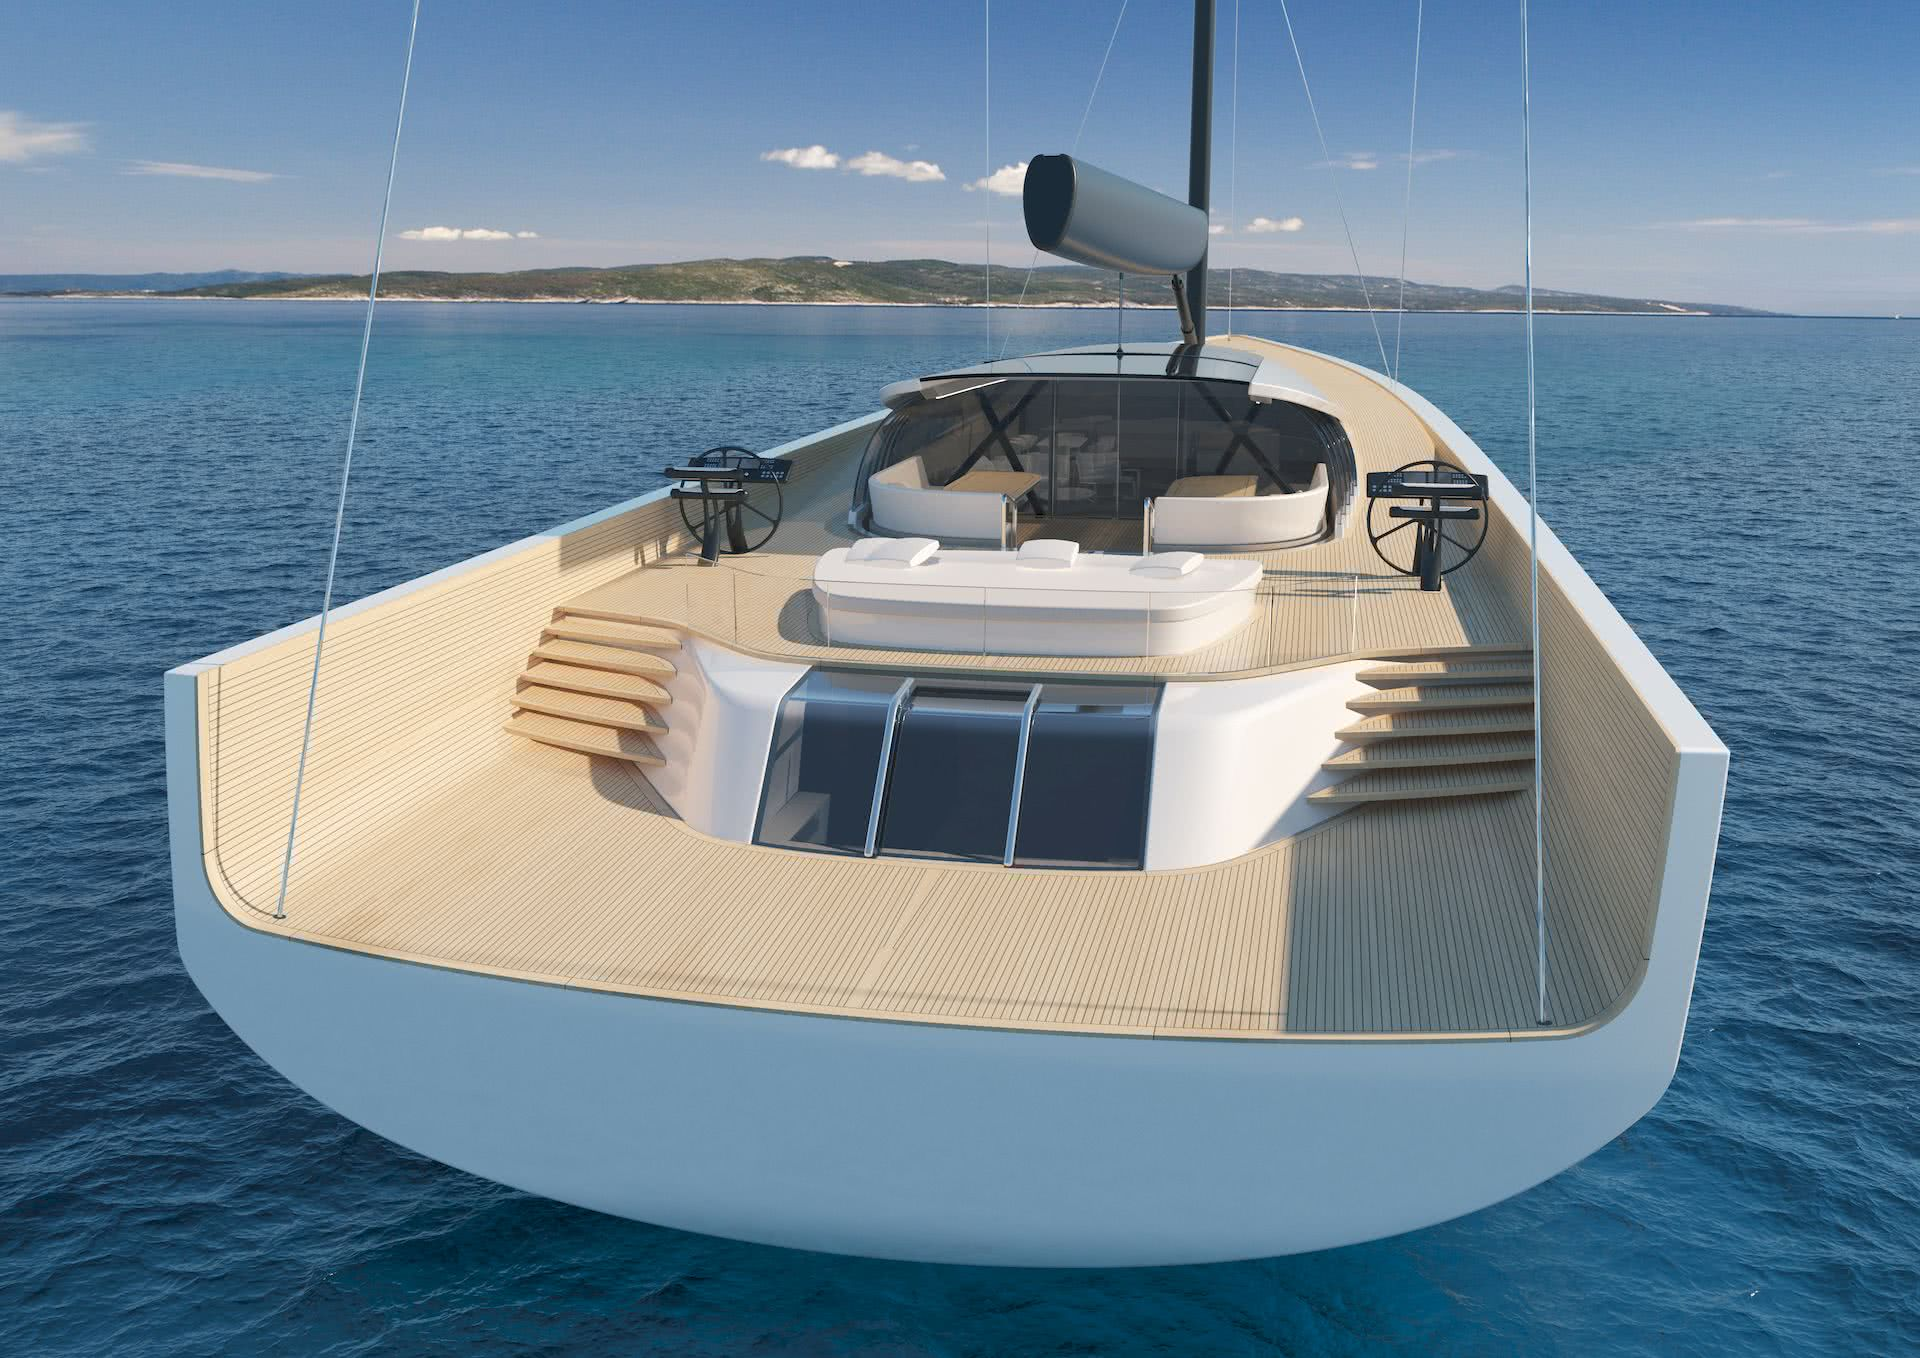 Self-Sustainable Sailing Yacht SY200 Philippe Briand